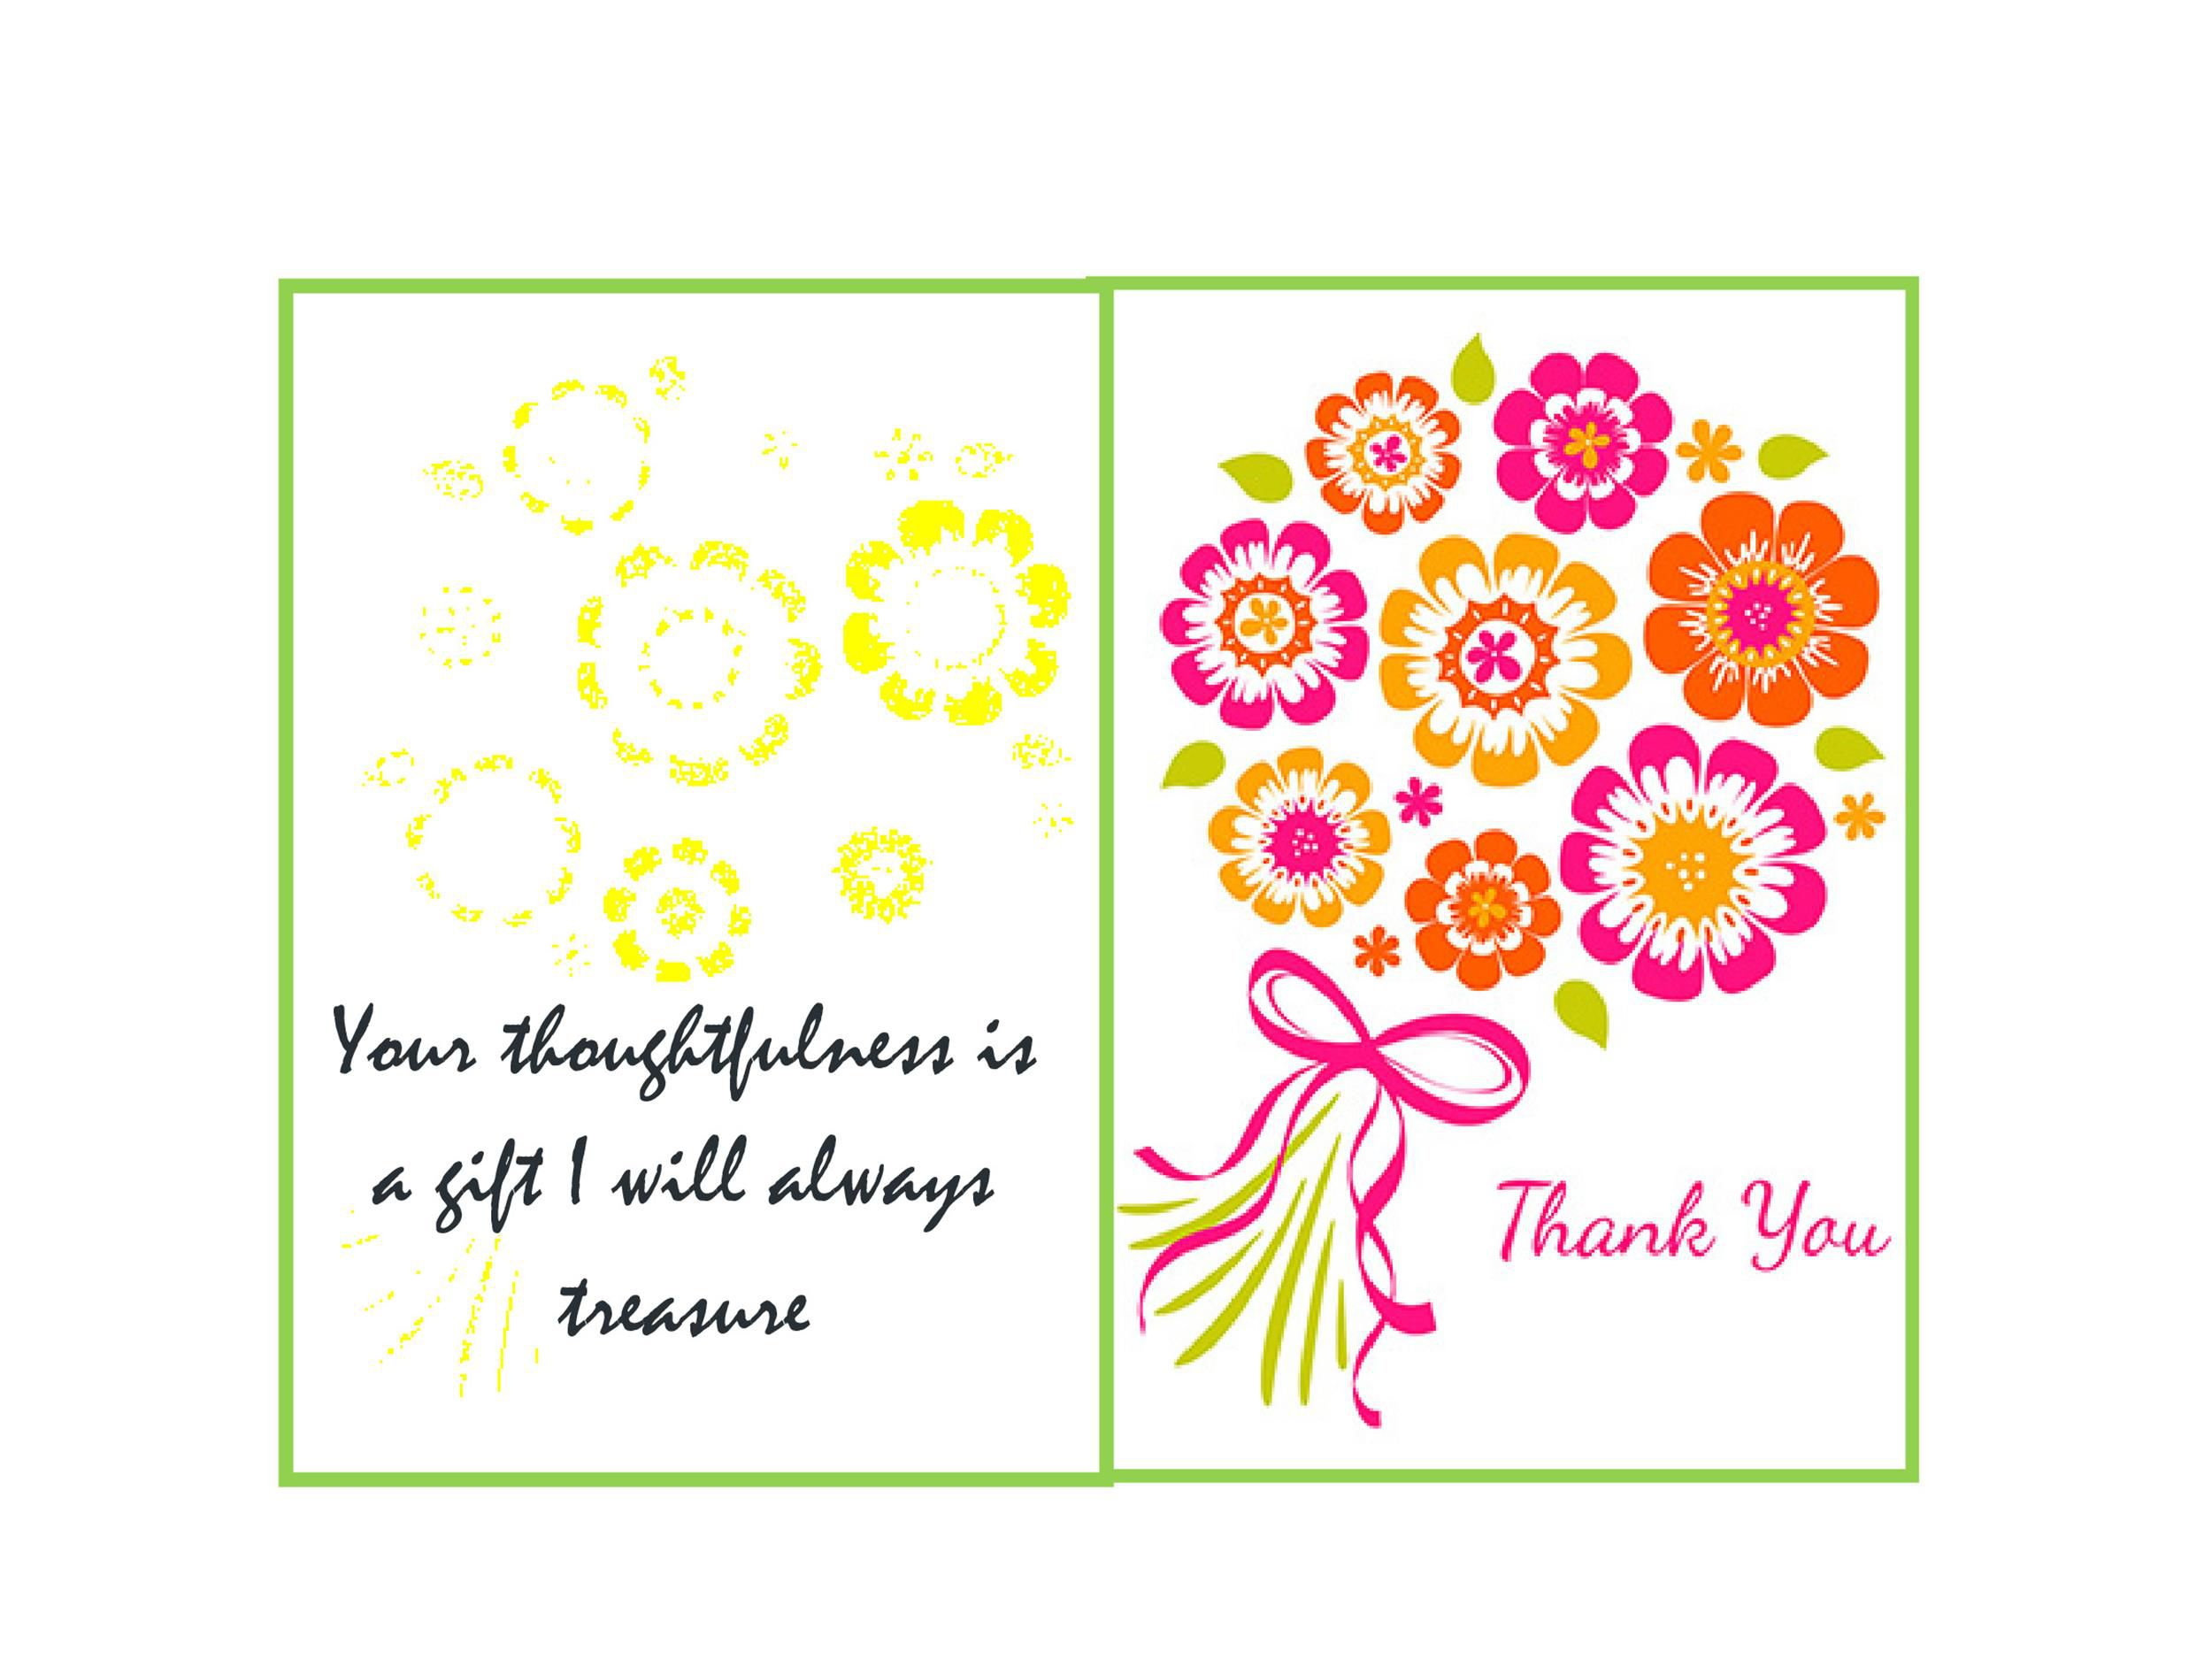 003 Dreaded Thank You Note Template Microsoft Word Image  Card Free Funeral LetterFull